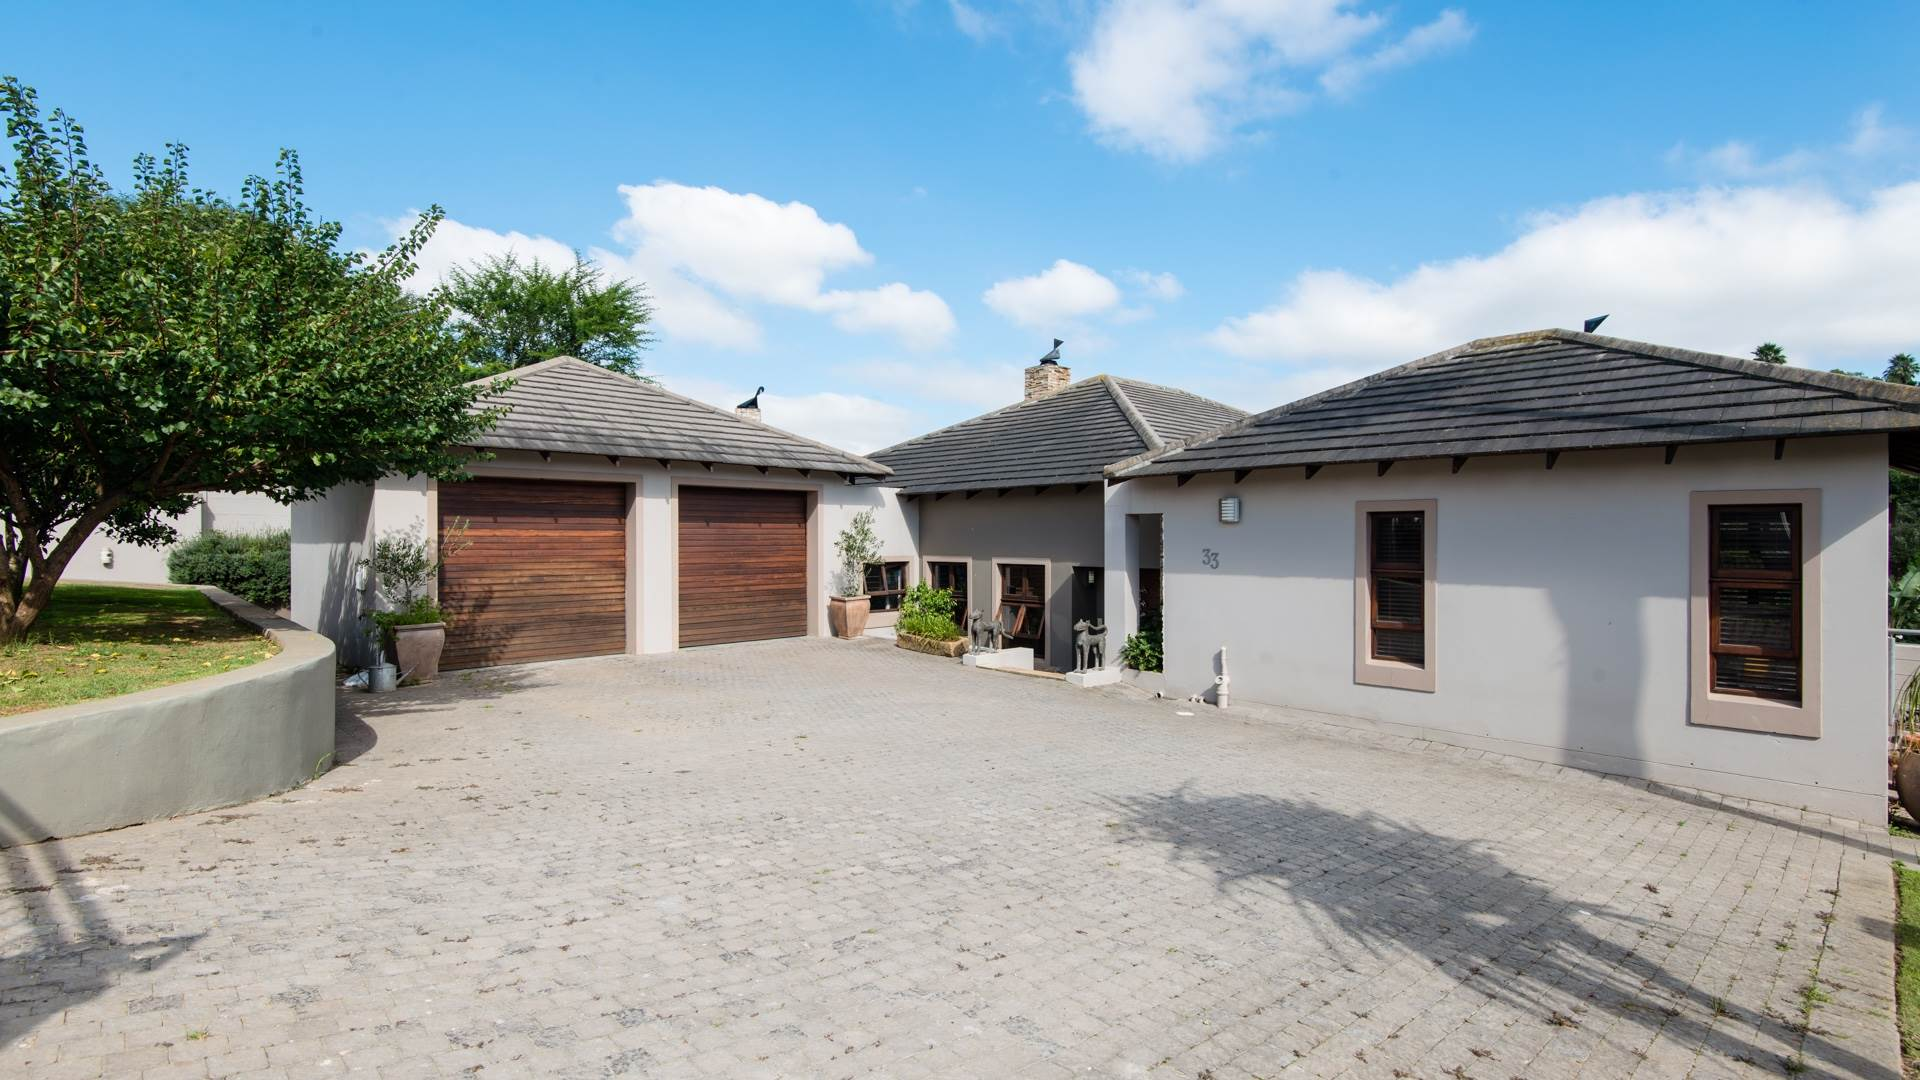 5 BedroomHouse For Sale In Bergsig